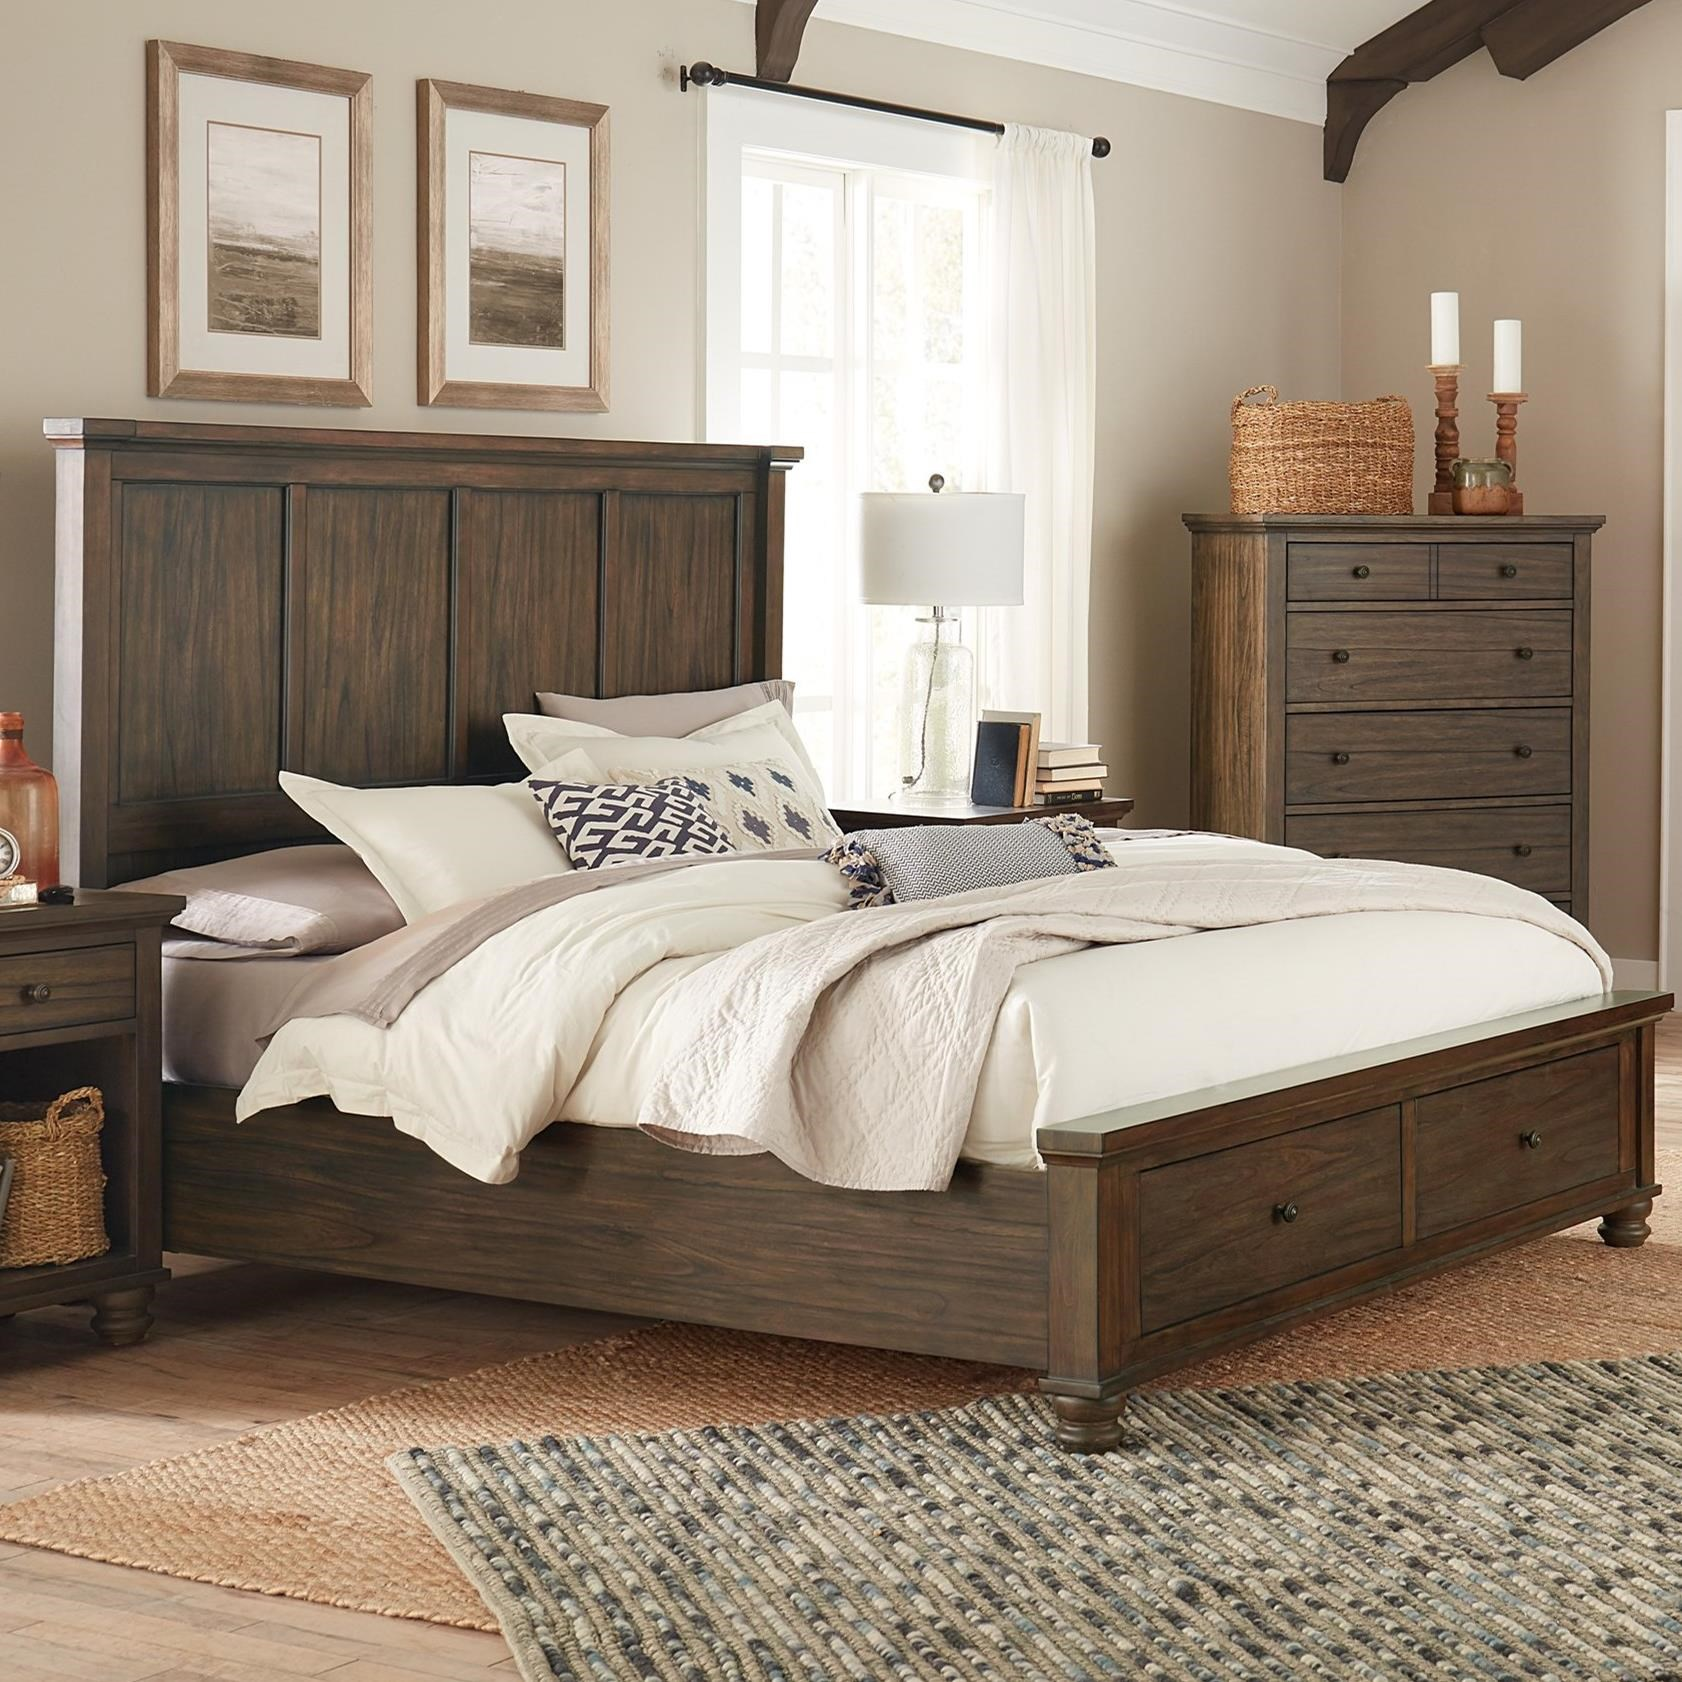 Hudson Valley King Panel Bed by Aspenhome at Stoney Creek Furniture